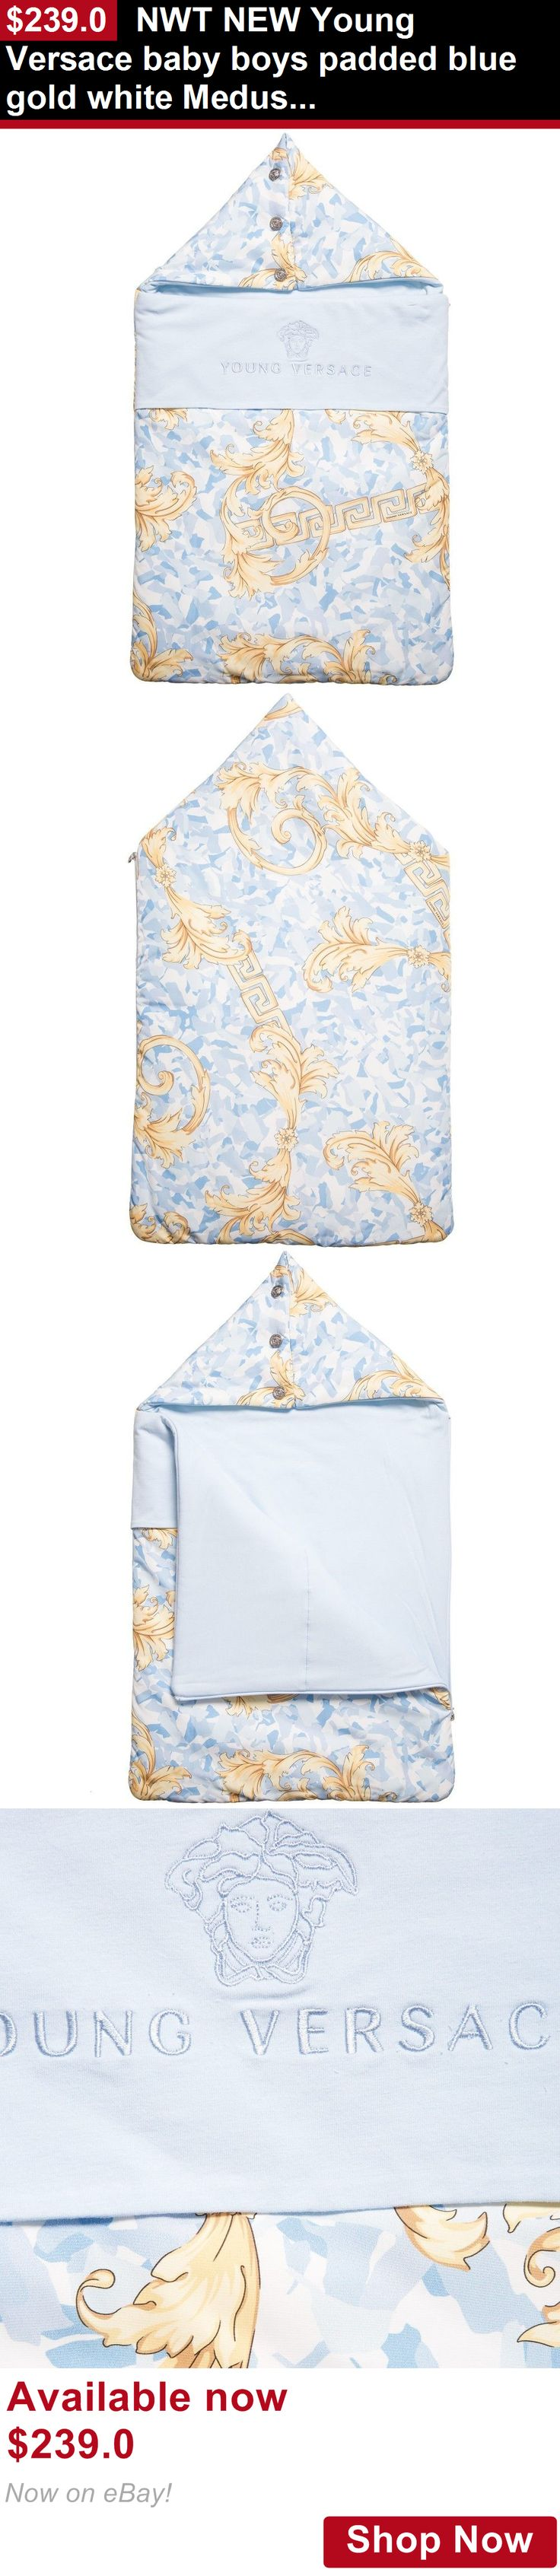 Sleeping Bags And Sleepsacks: Nwt New Young Versace Baby Boys Padded Blue Gold White Medusa Sleeping Bag Nest BUY IT NOW ONLY: $239.0